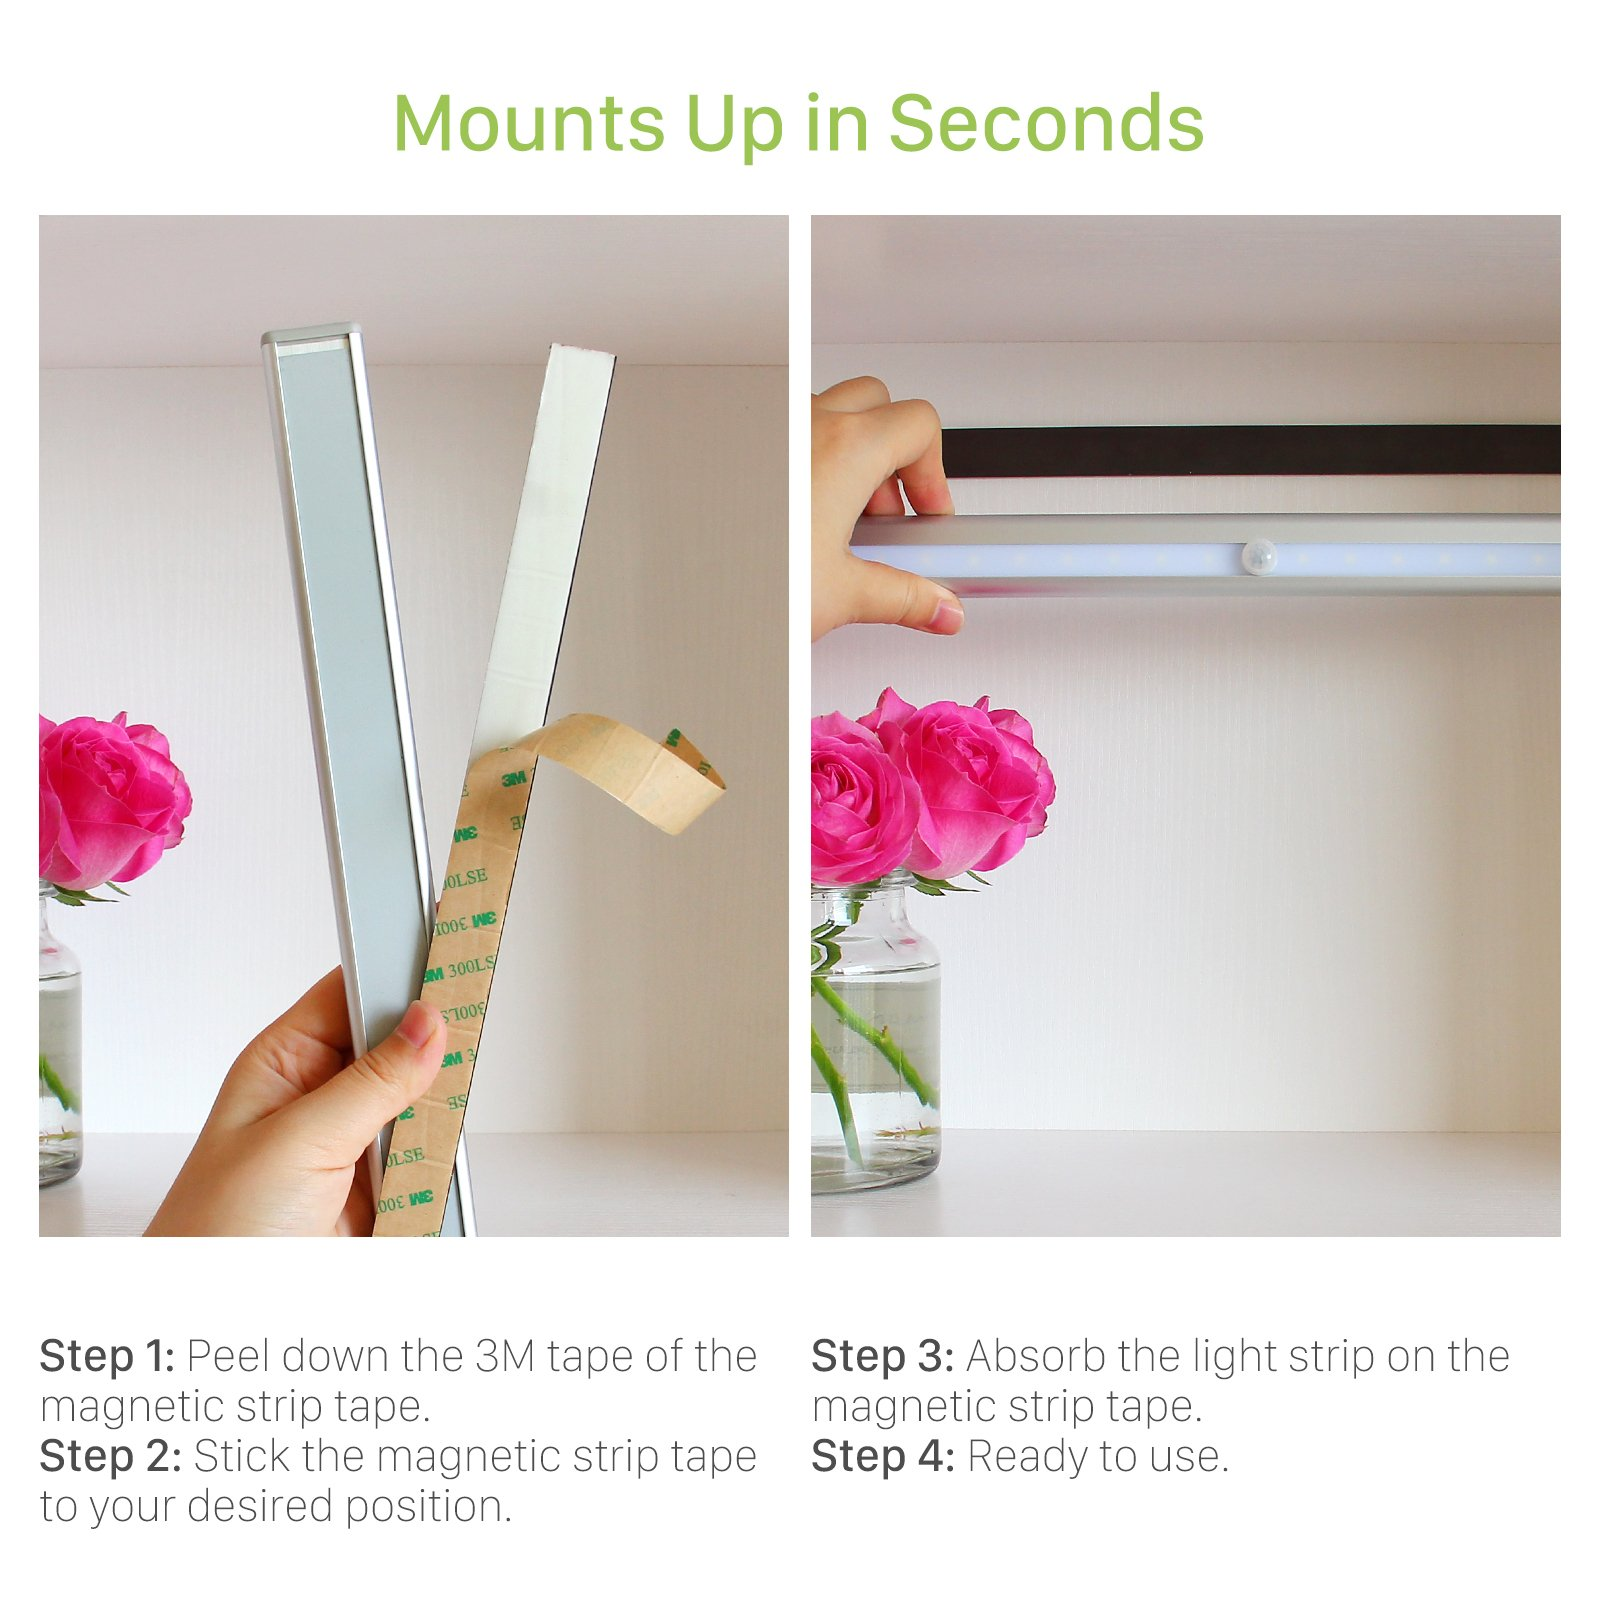 OxyLED Motion Sensor Closet Lights, Wardrobe Light USB Rechargeable Under Cabinet Lightening, Stick-on Cordless 20 LED Night Light Emergency light, Safe Lights with Magnetic Strip, 1 Pack, T-02S by OxyLED (Image #6)